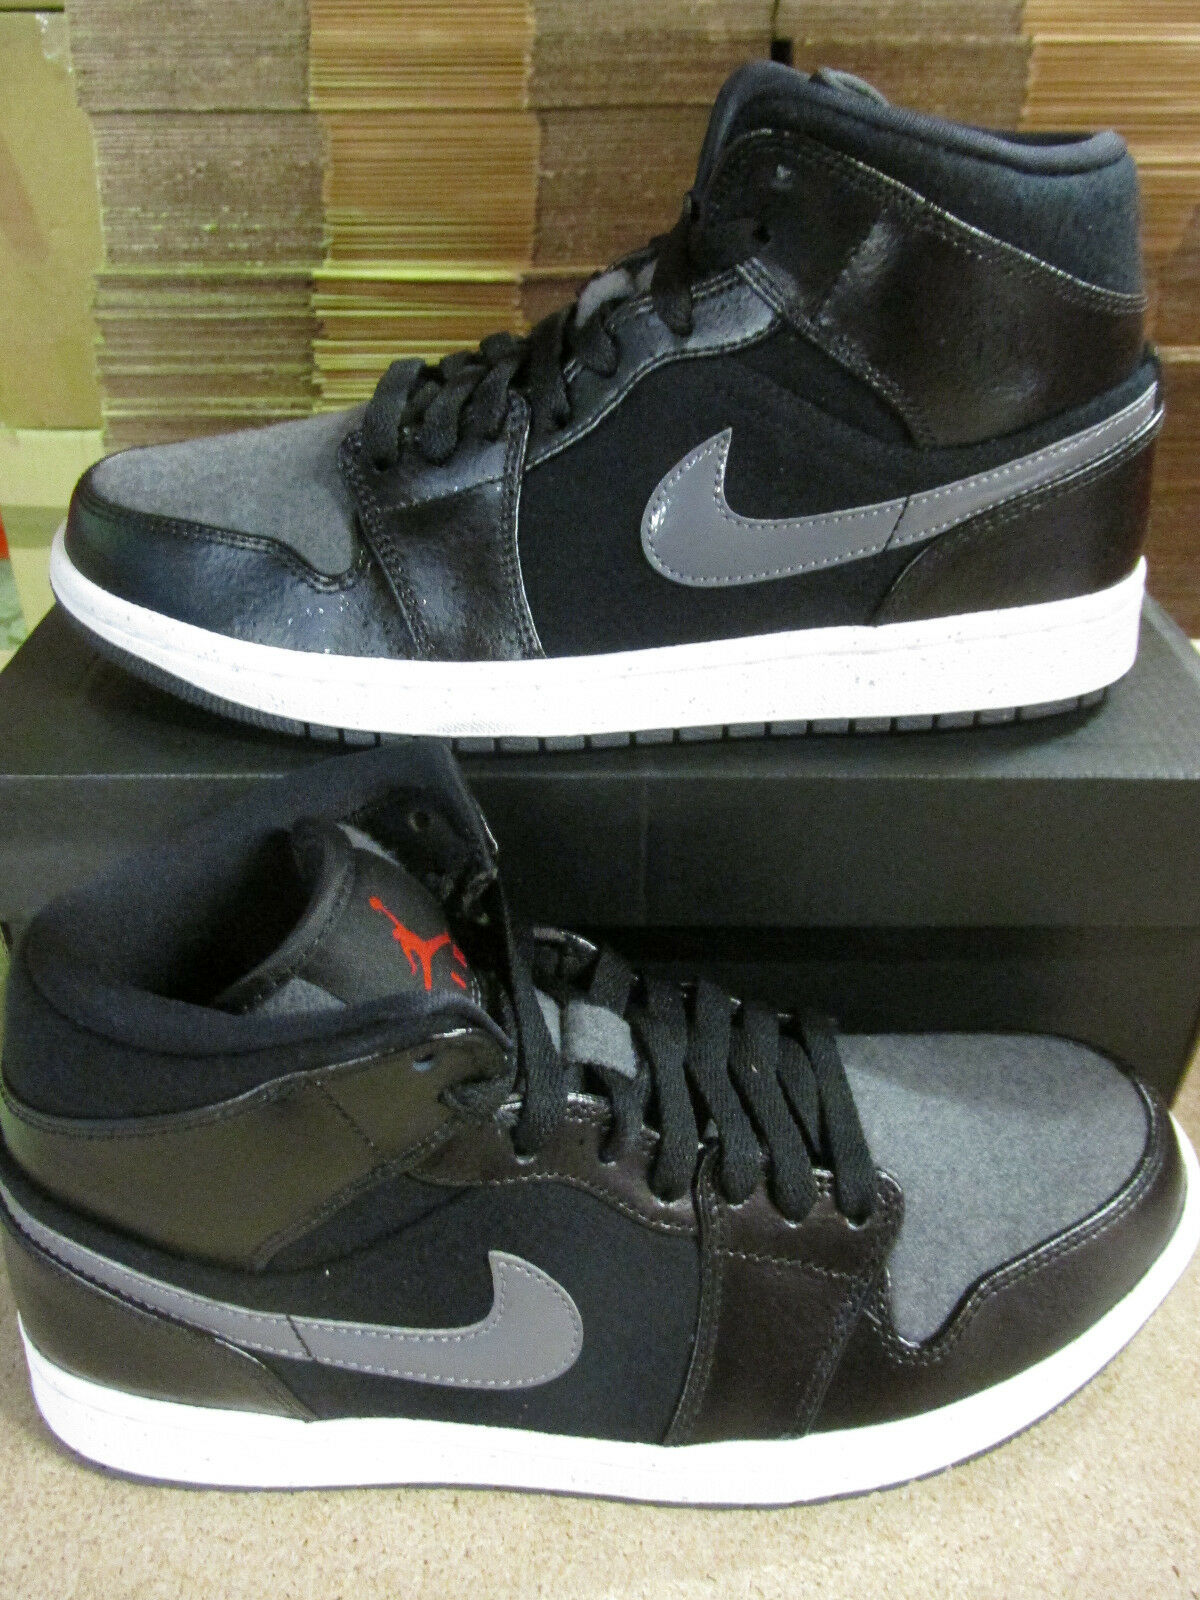 Nike Air Jordan 1 Mid PREM Hi Top Basketball Trainers 852542 001 Sneakers Shoes best-selling model of the brand